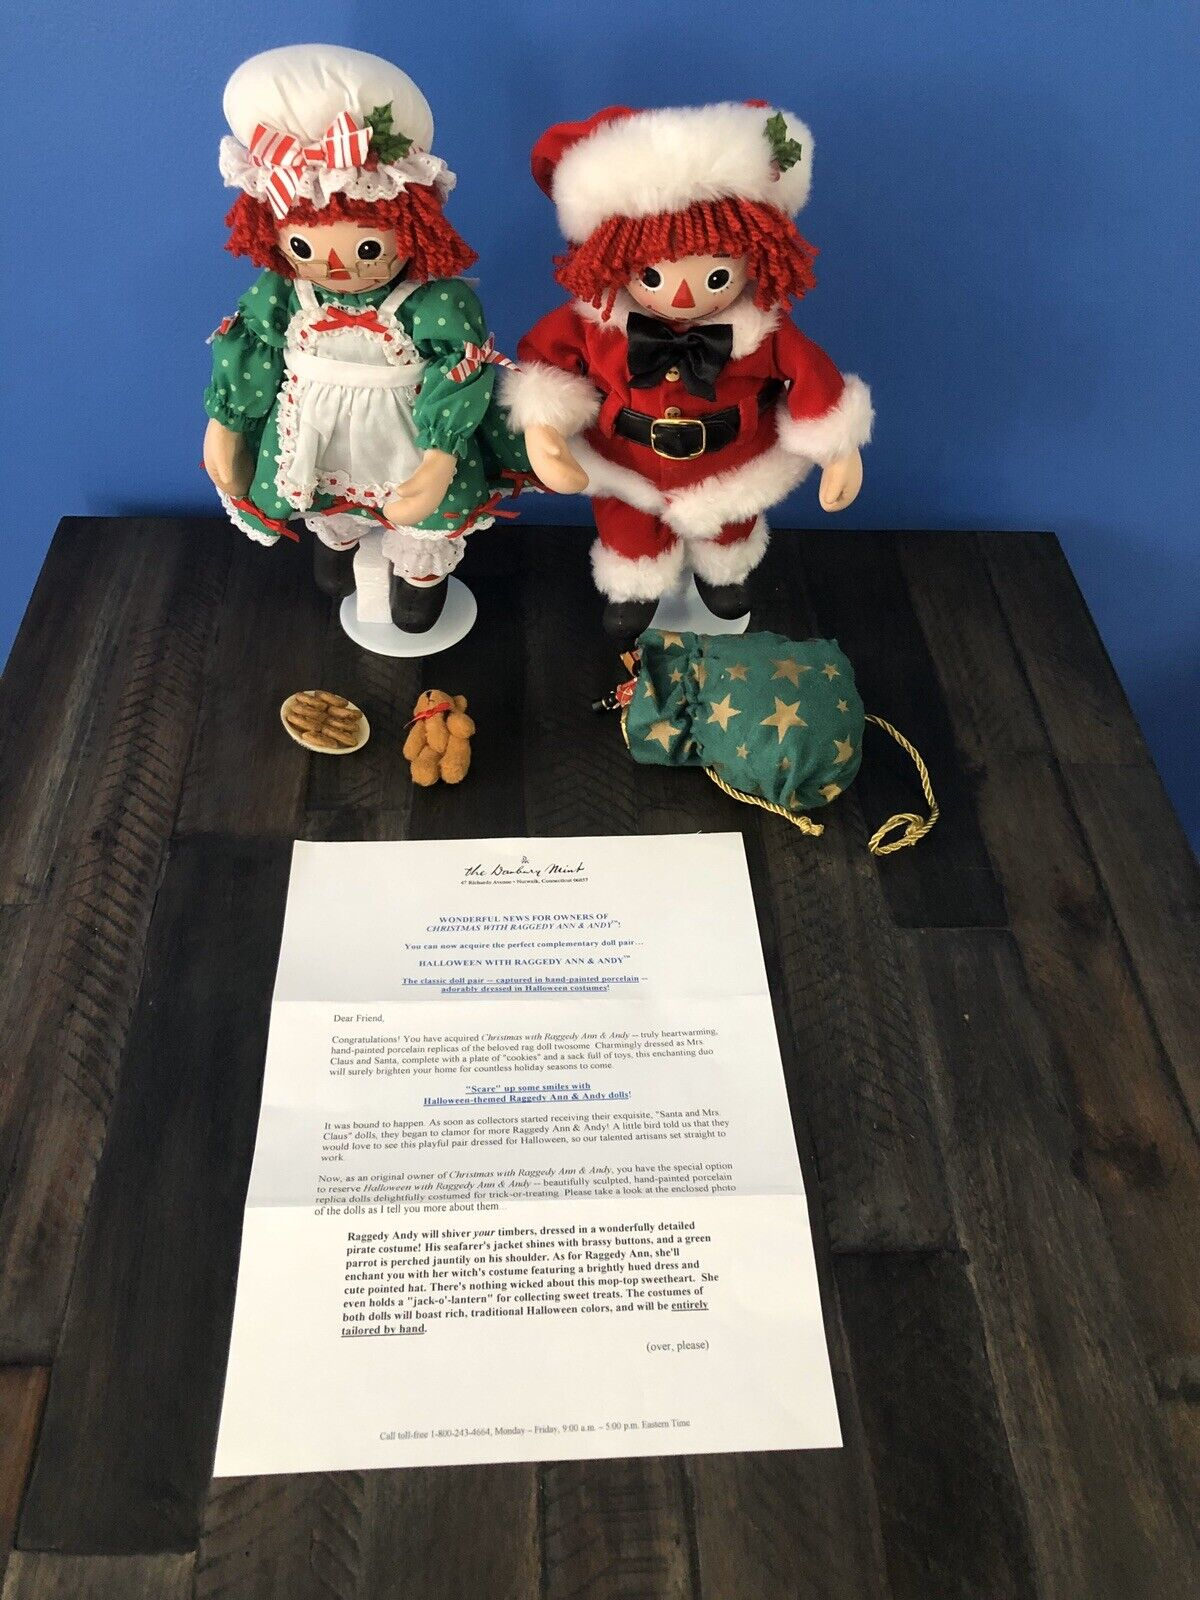 Christmas With Raggedy Ann And Andy Danbury Mint Dolls In Box 2006